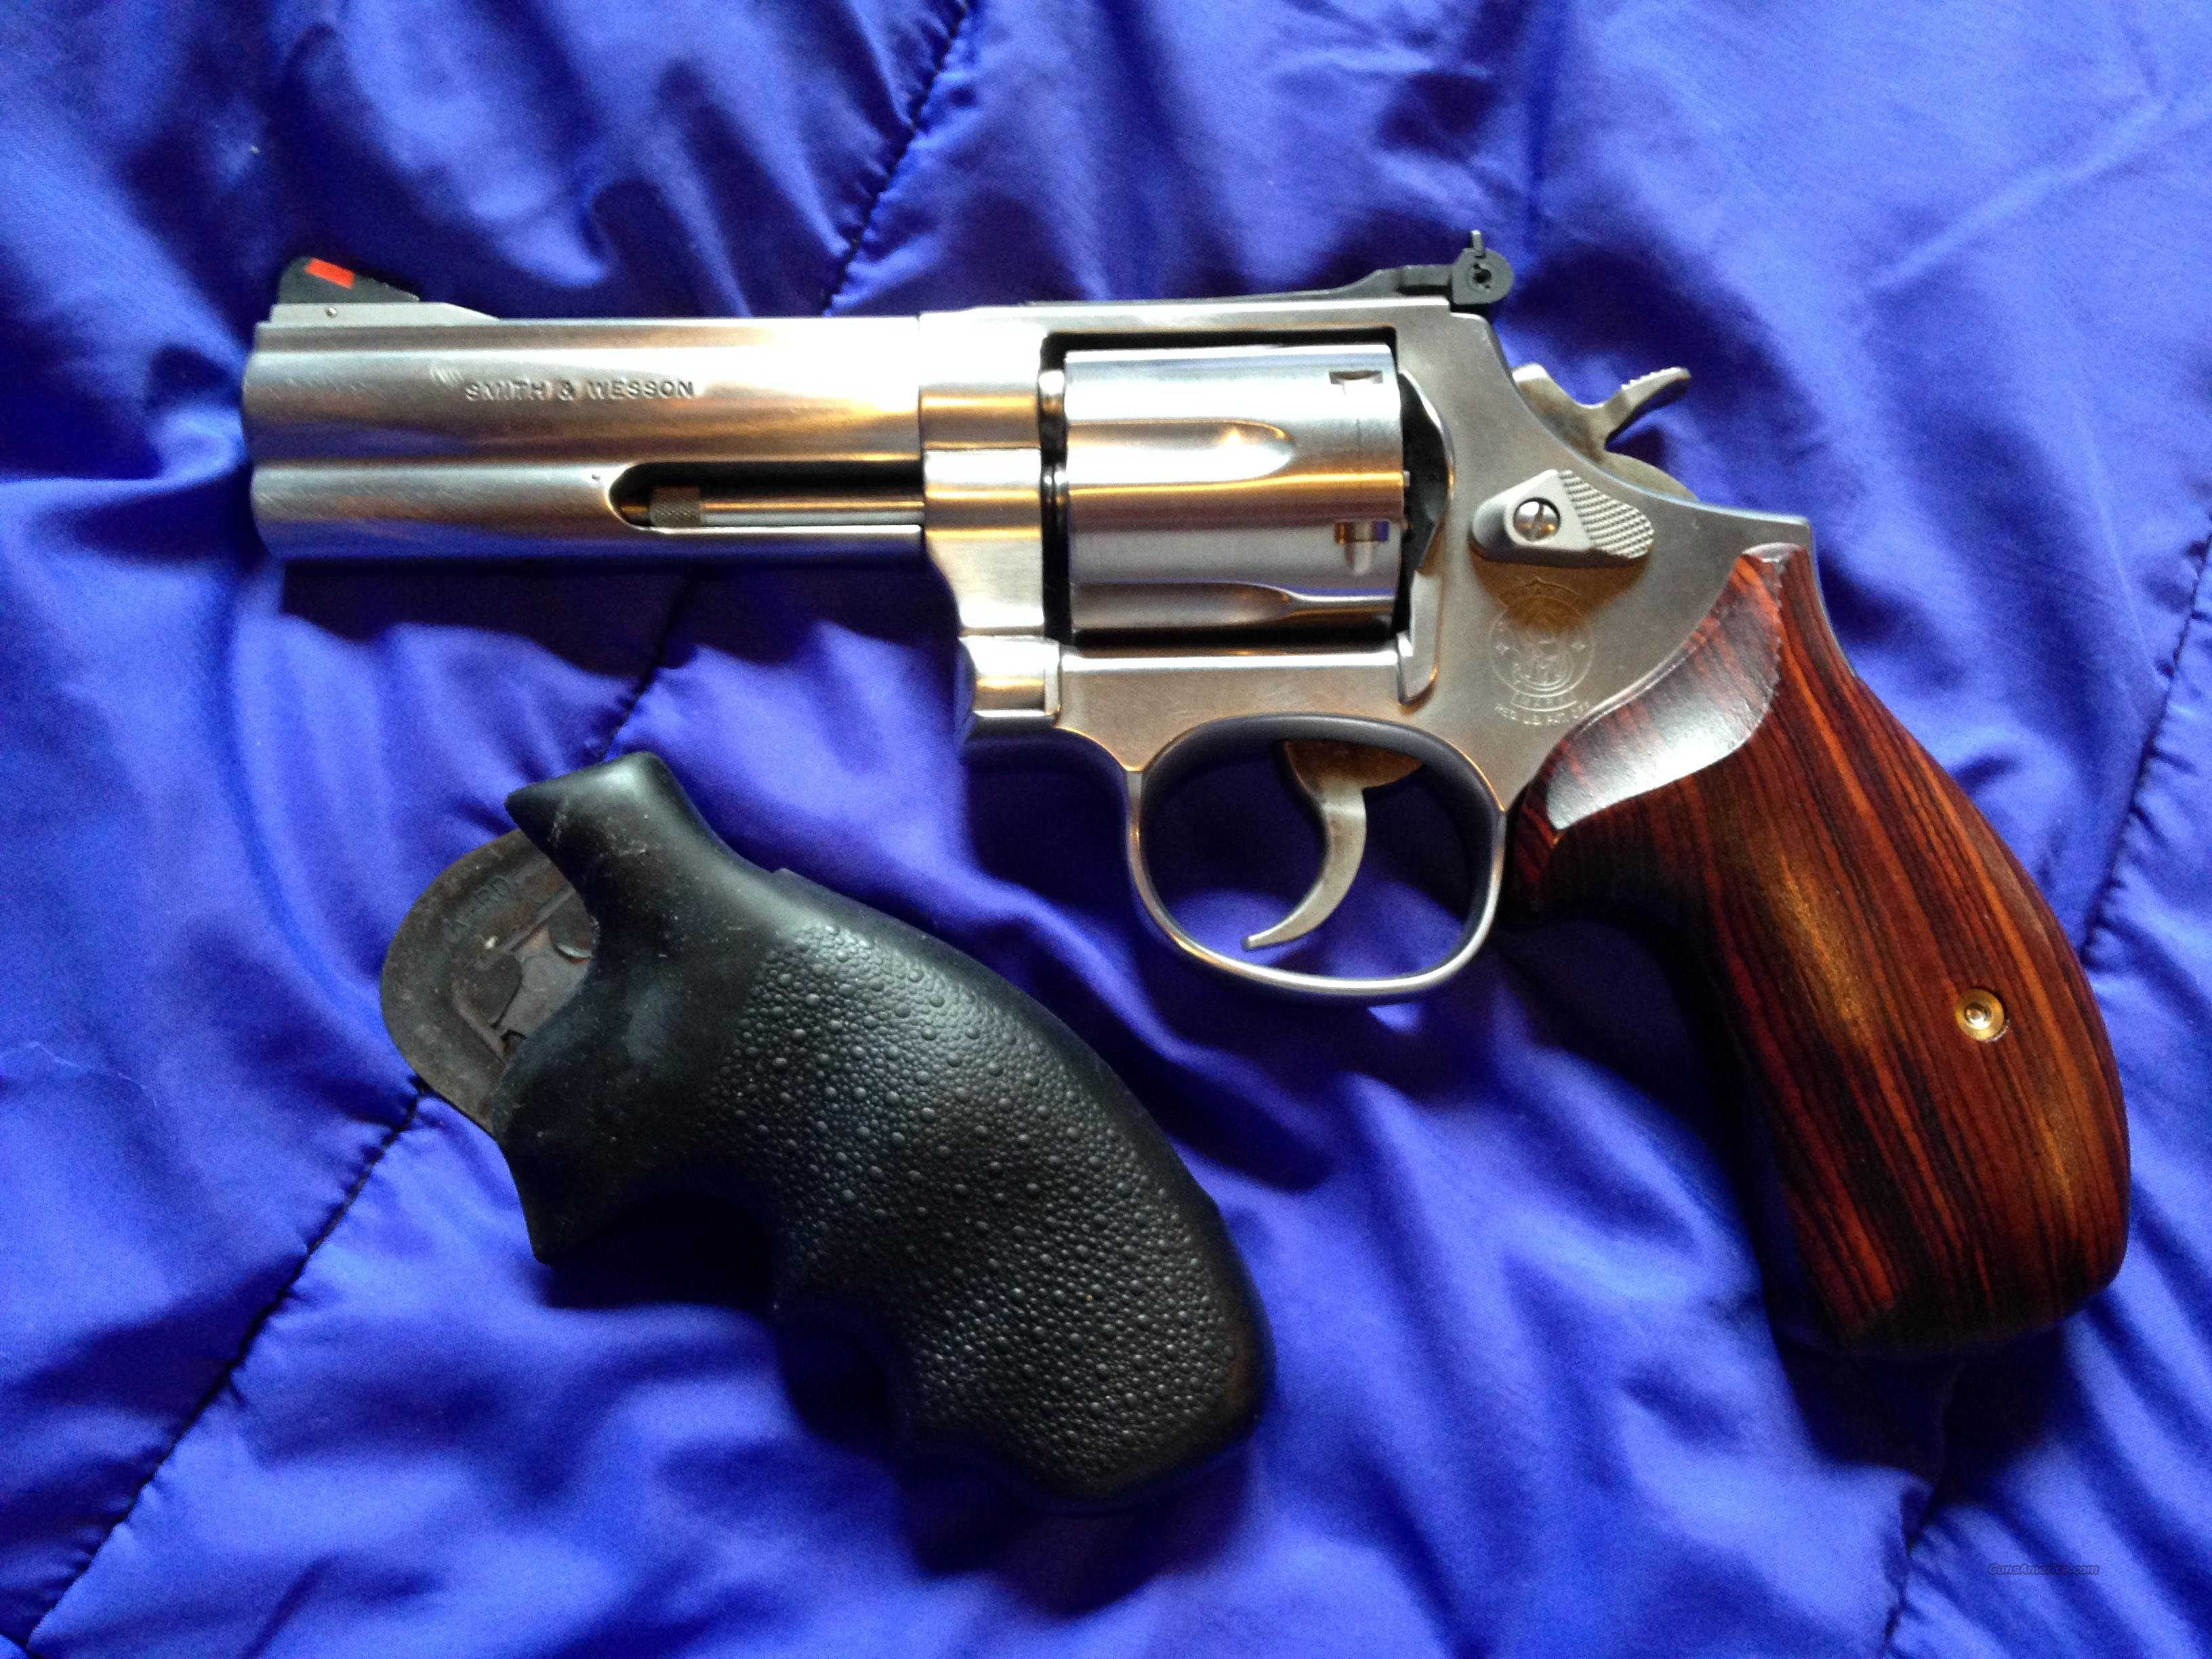 Smith & Wesson Model 686-5 stainless 4-inch 357 Magnum  Guns > Pistols > Smith & Wesson Revolvers > Full Frame Revolver